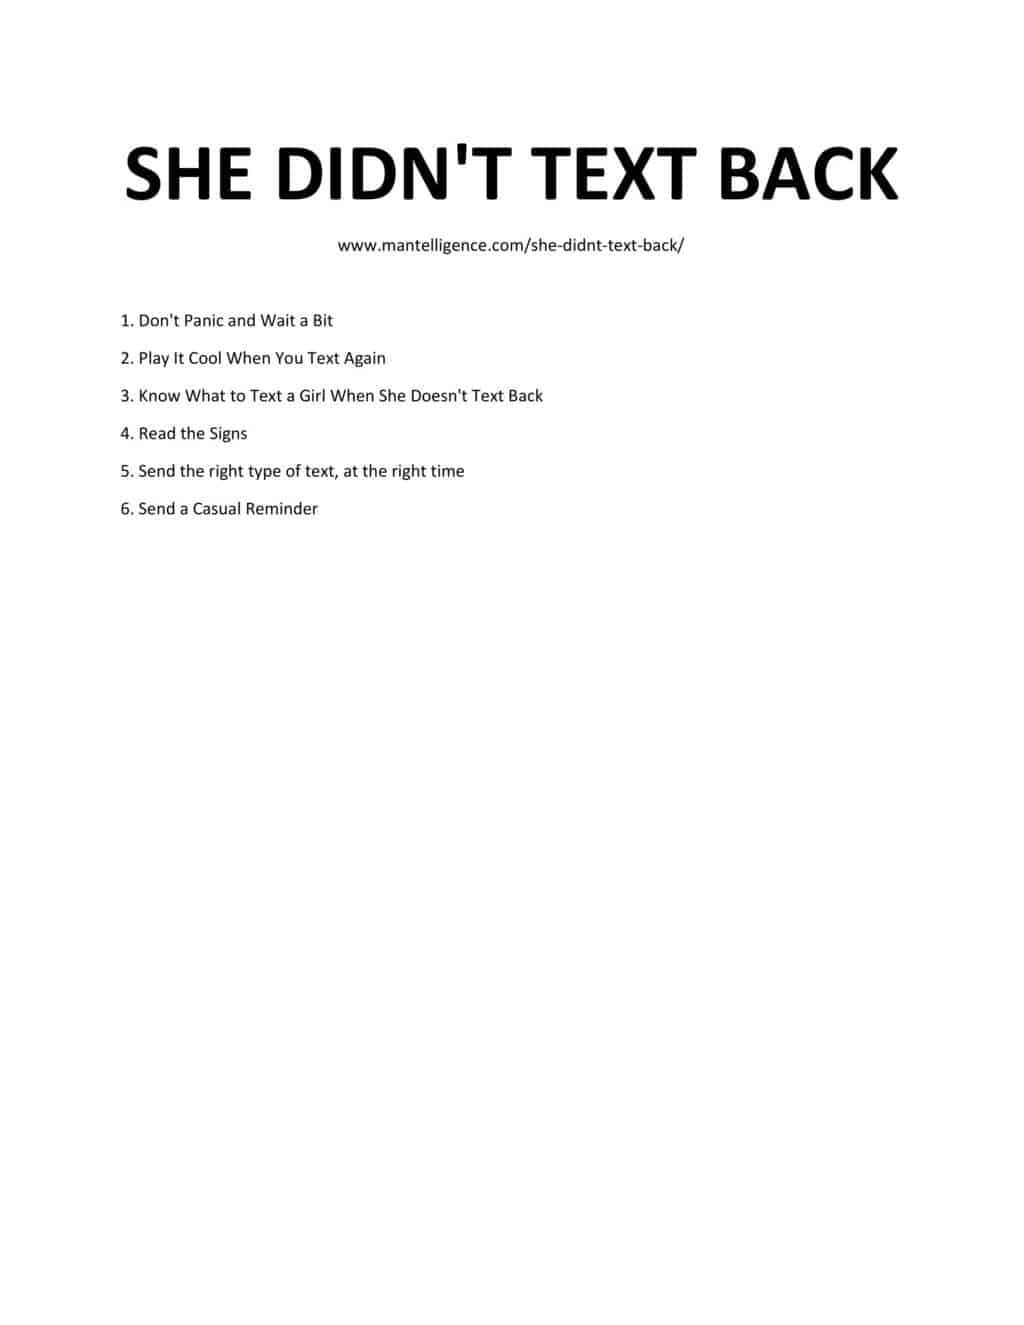 Downloadable list of steps of when She Didn't Text Back